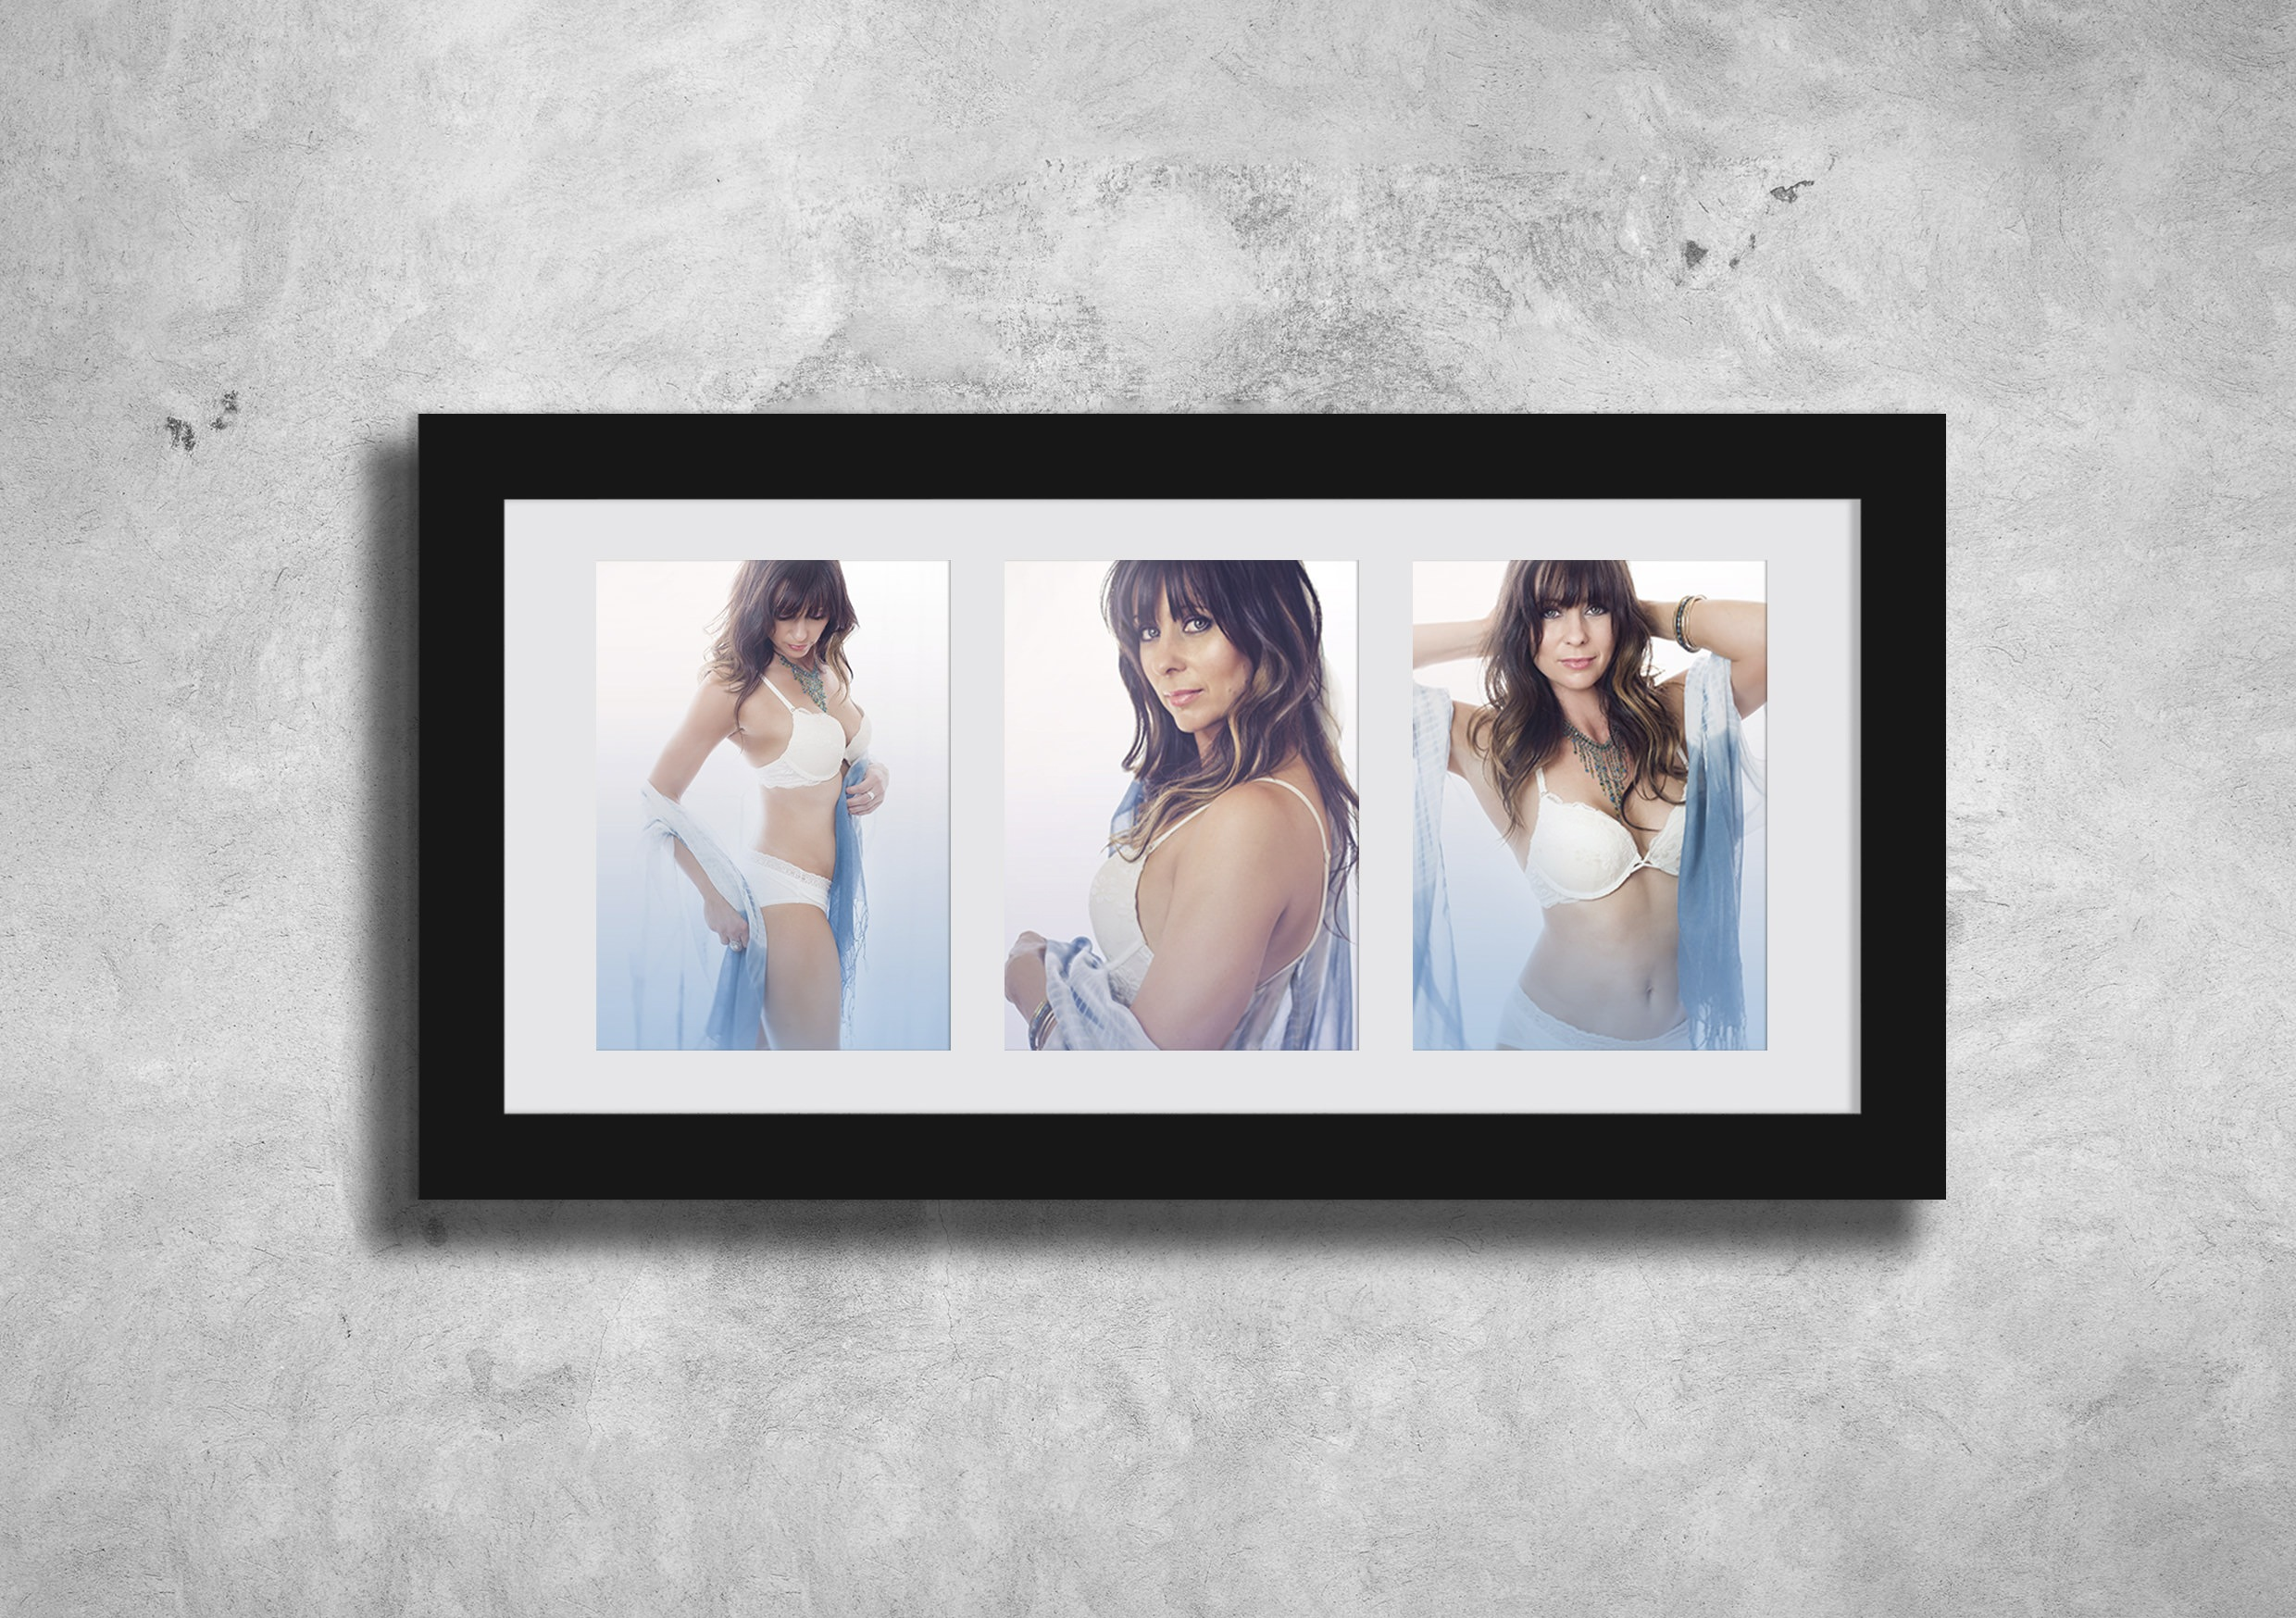 boudoir portraits of lady framed on wall